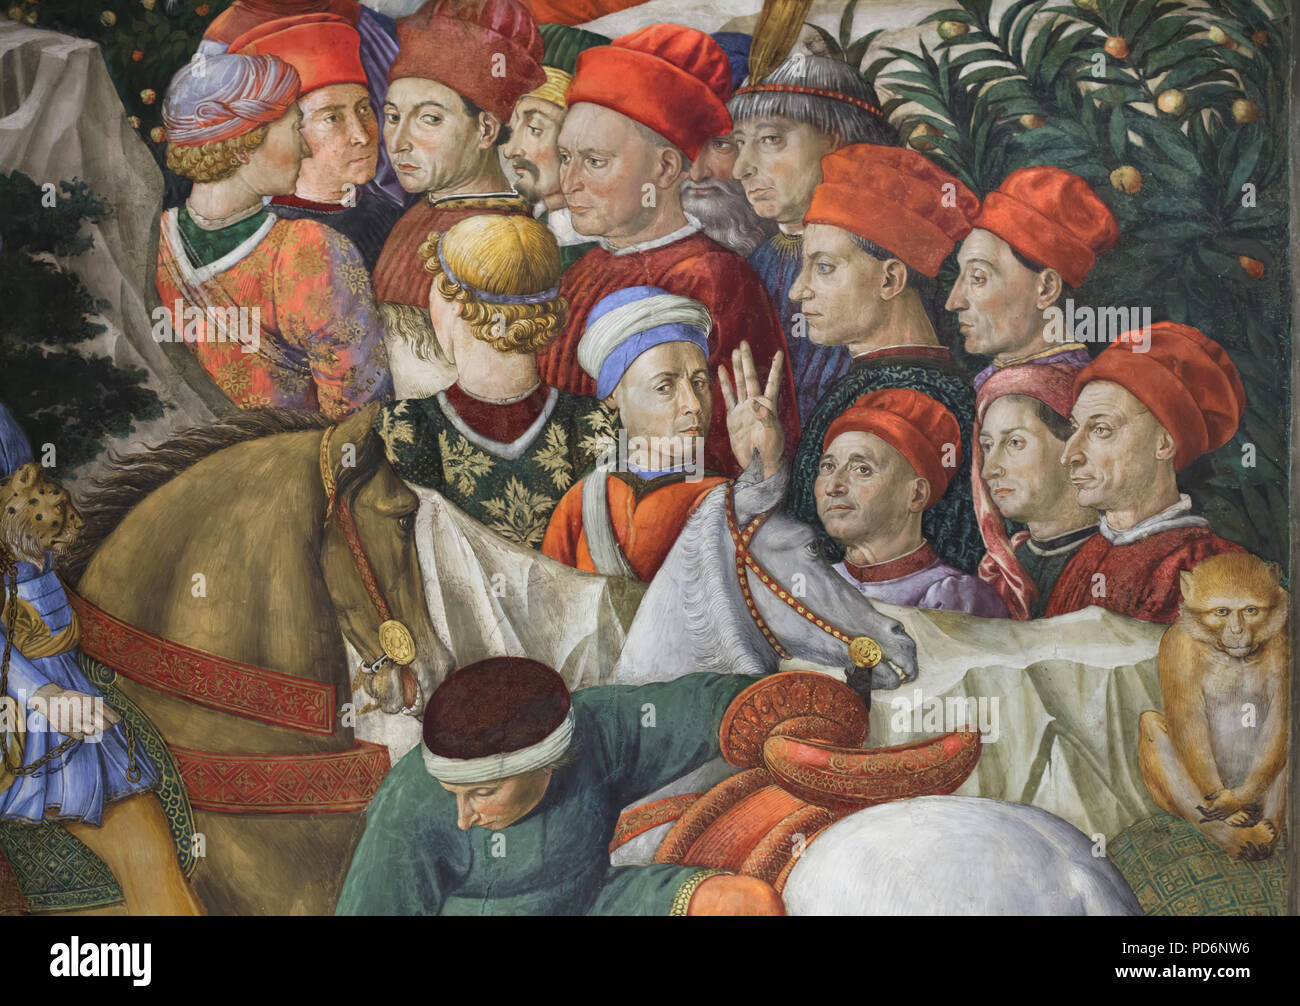 Self-portrait of Italian Renaissance painter Benozzo Gozzoli (in the white and blue hat in the centre) depicted in the mural by Benozzo Gozzoli in the Magi Chapel in the Palazzo Medici Riccardi in Florence, Tuscany, Italy. Stock Photo